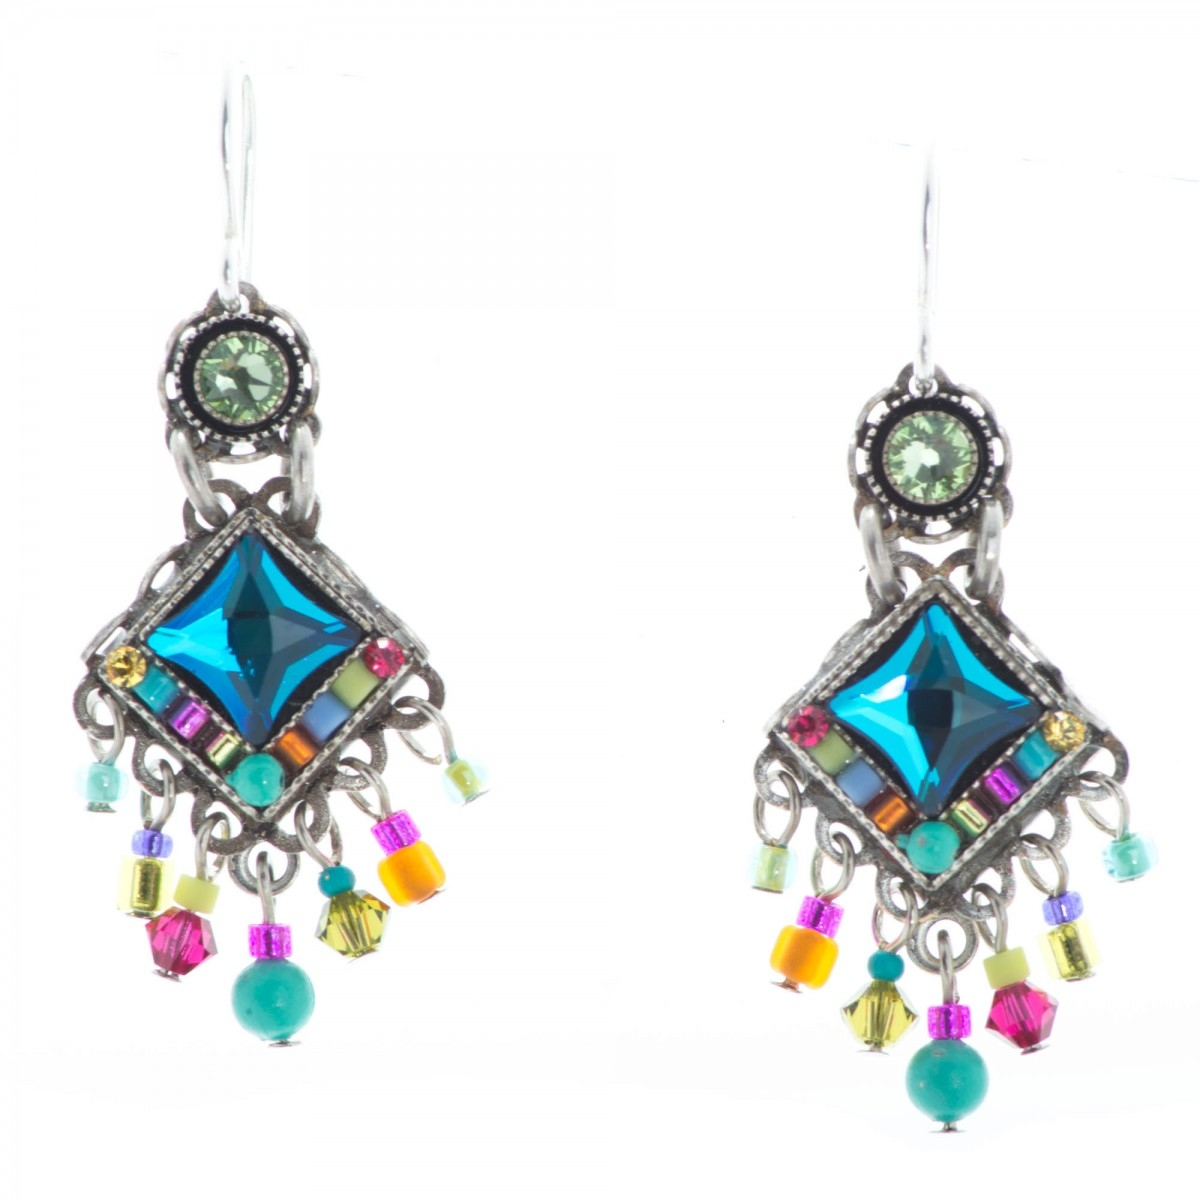 Bright Mini Chandelier Multi Color Austrian Crystal Earrings Throughout Turquoise Mini Chandeliers (Image 13 of 25)